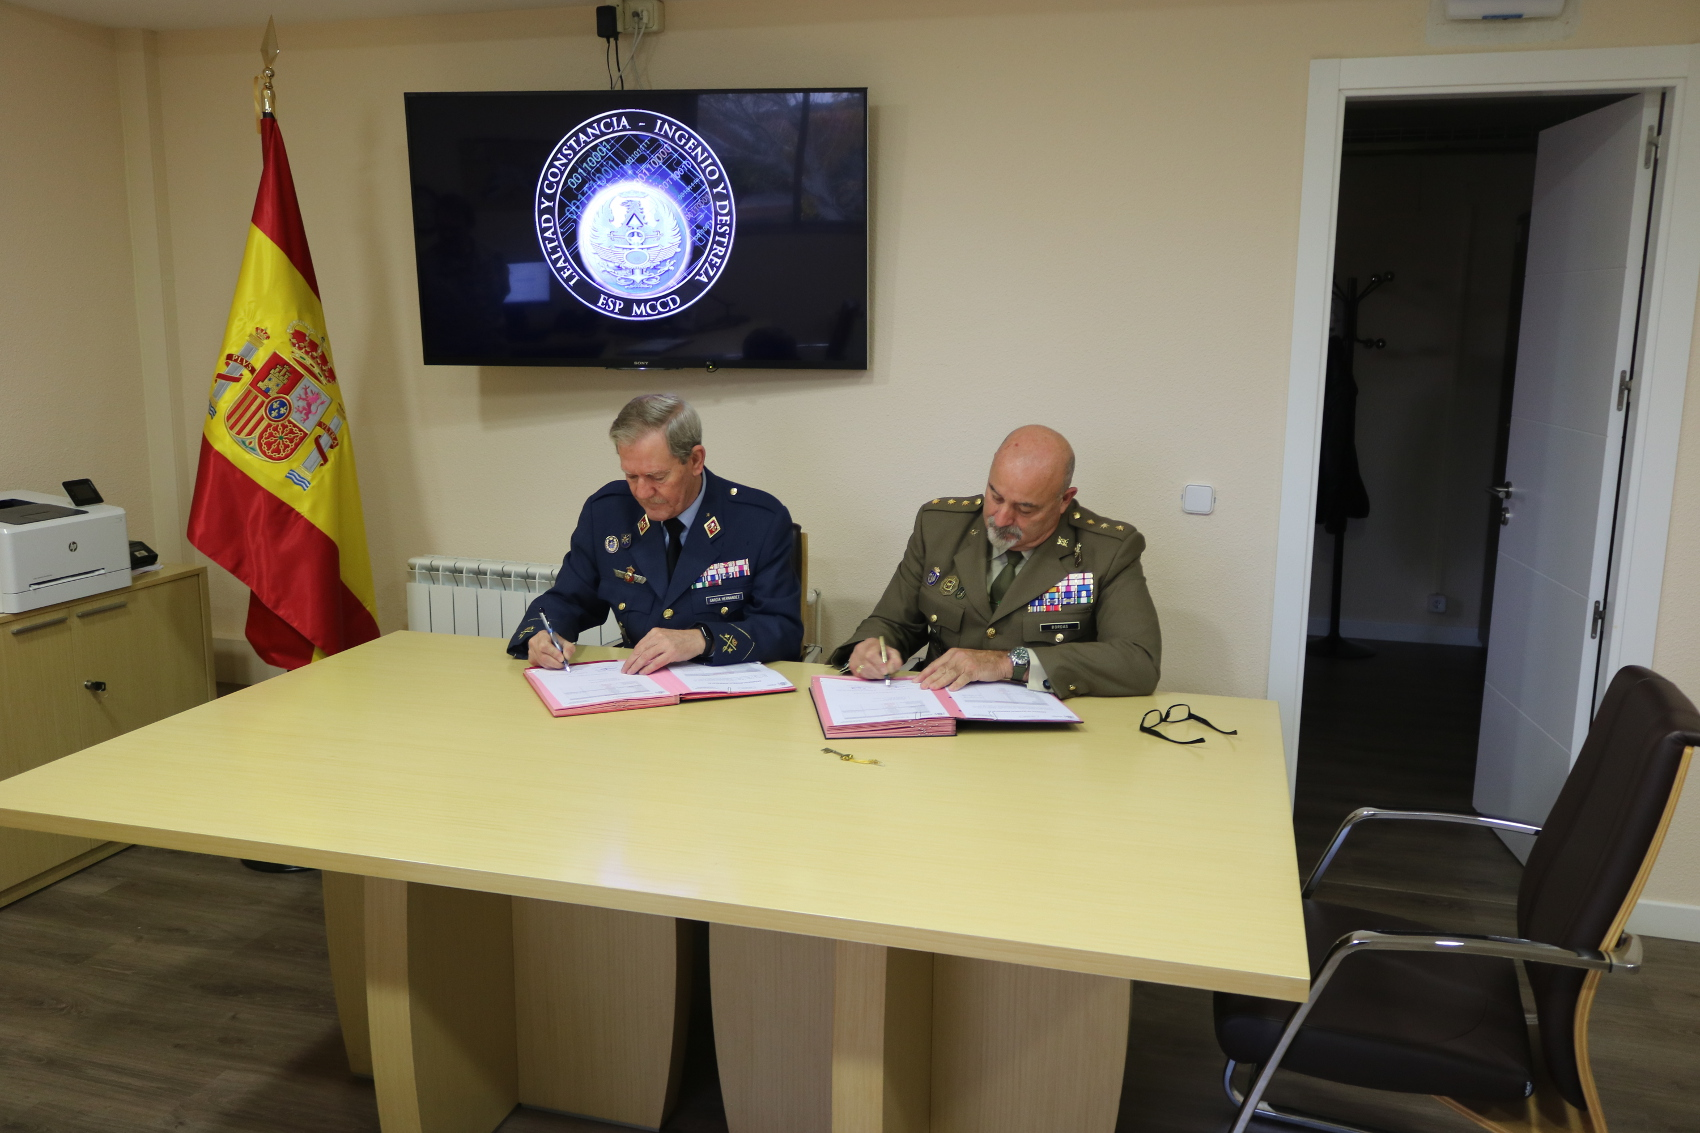 The Commander of the Joint Cyber-Defence Command receives the keys of the new MCCD building